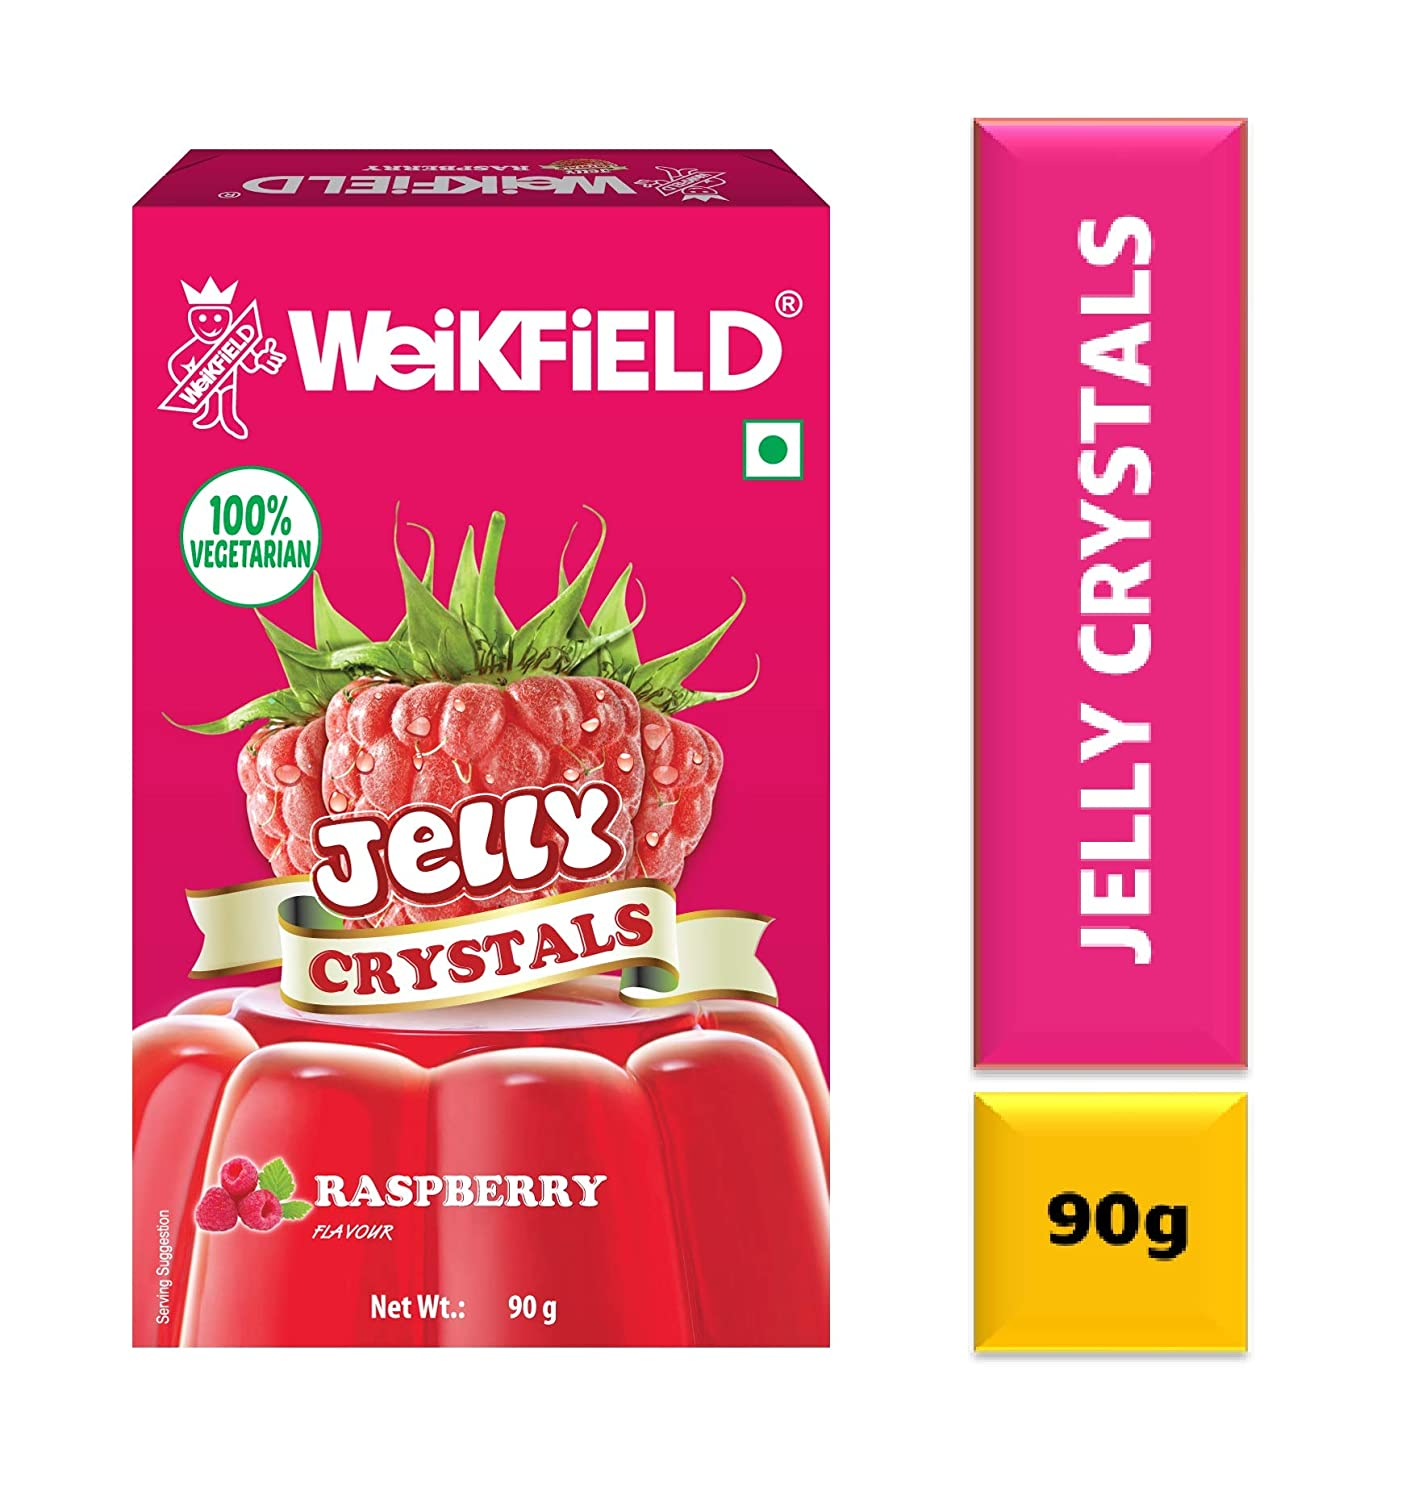 Weikfield Jelly Crystals Raspberry 90g Amazon Retail Pink Arbutin